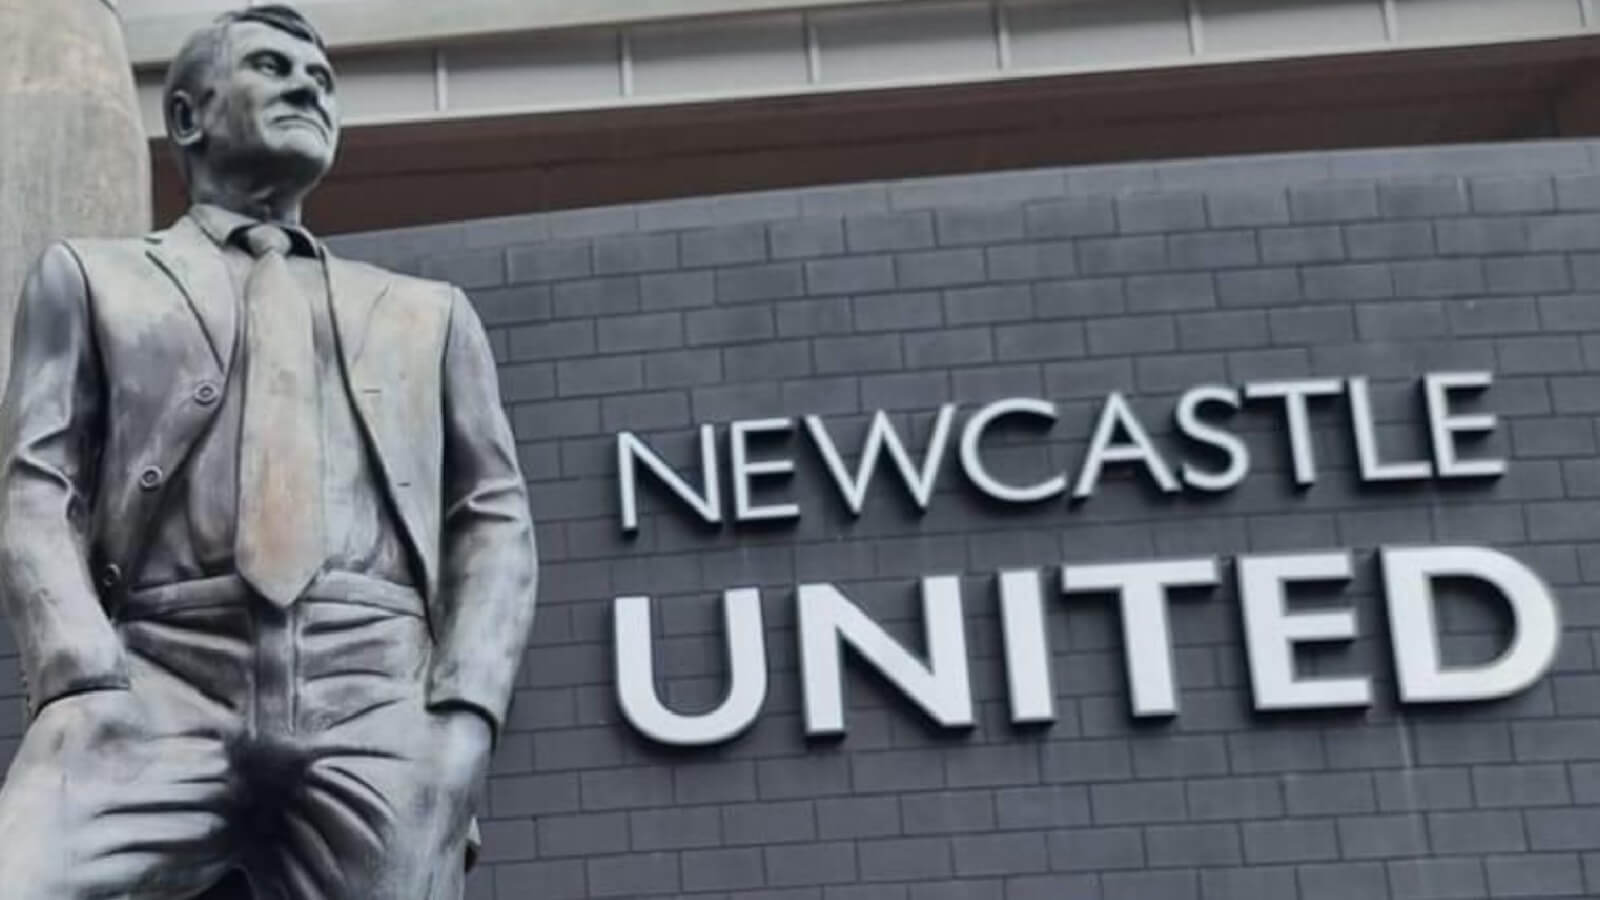 Alan Shearer claims Newcastle United's takeover a special day